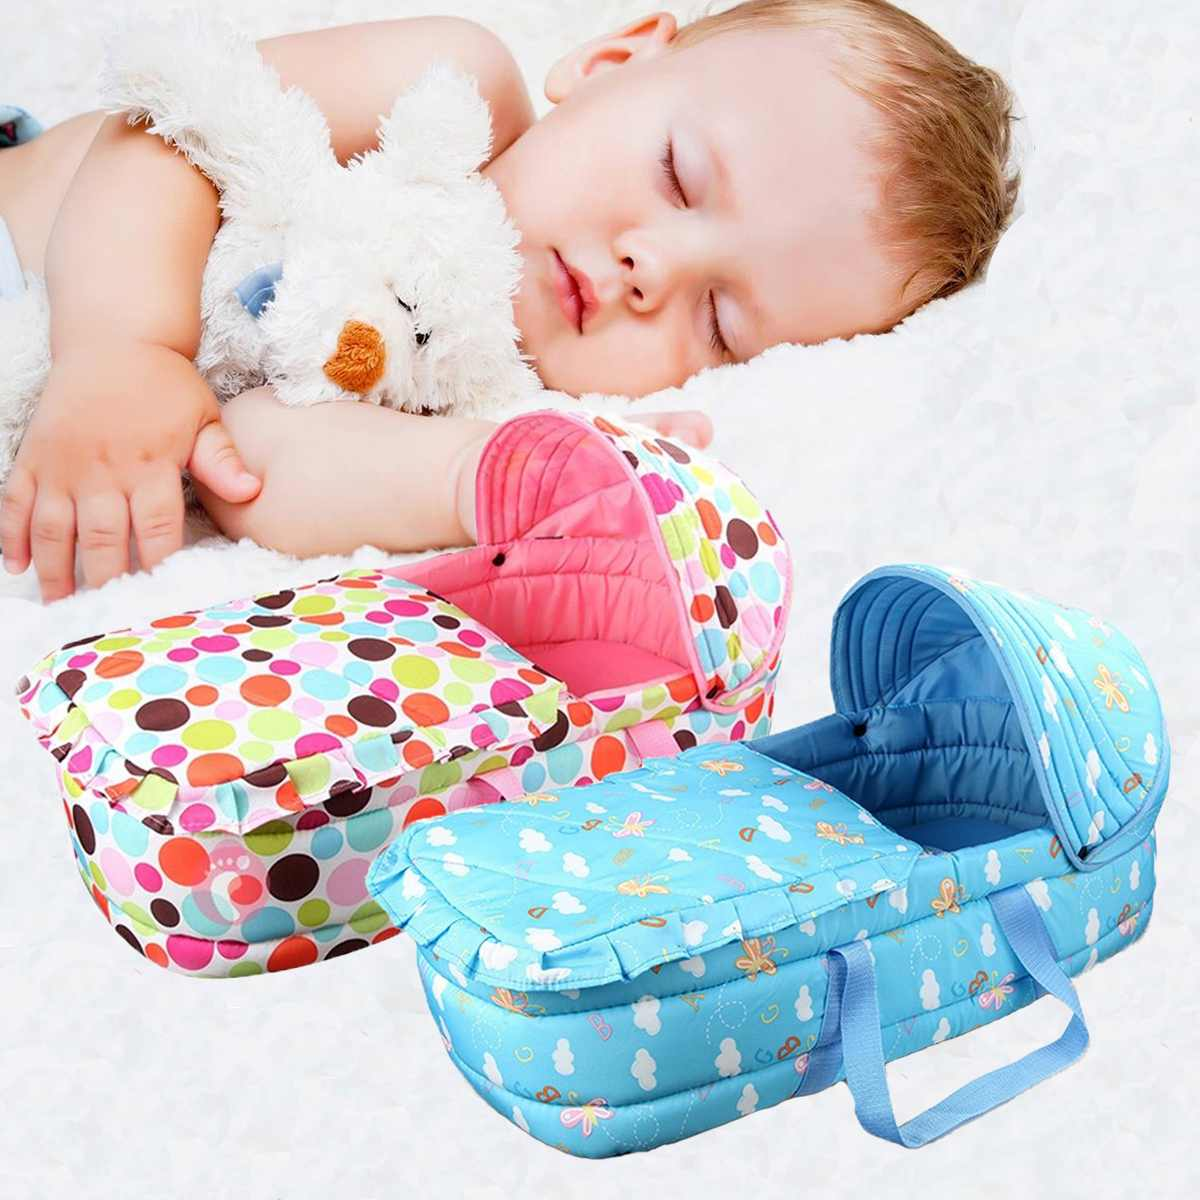 Baby Kids New Infant Co-Sleeping Cribs & Cradles Bedside Cribs Moses Baskets Portable Cribs Toddler Beds Travel Beds